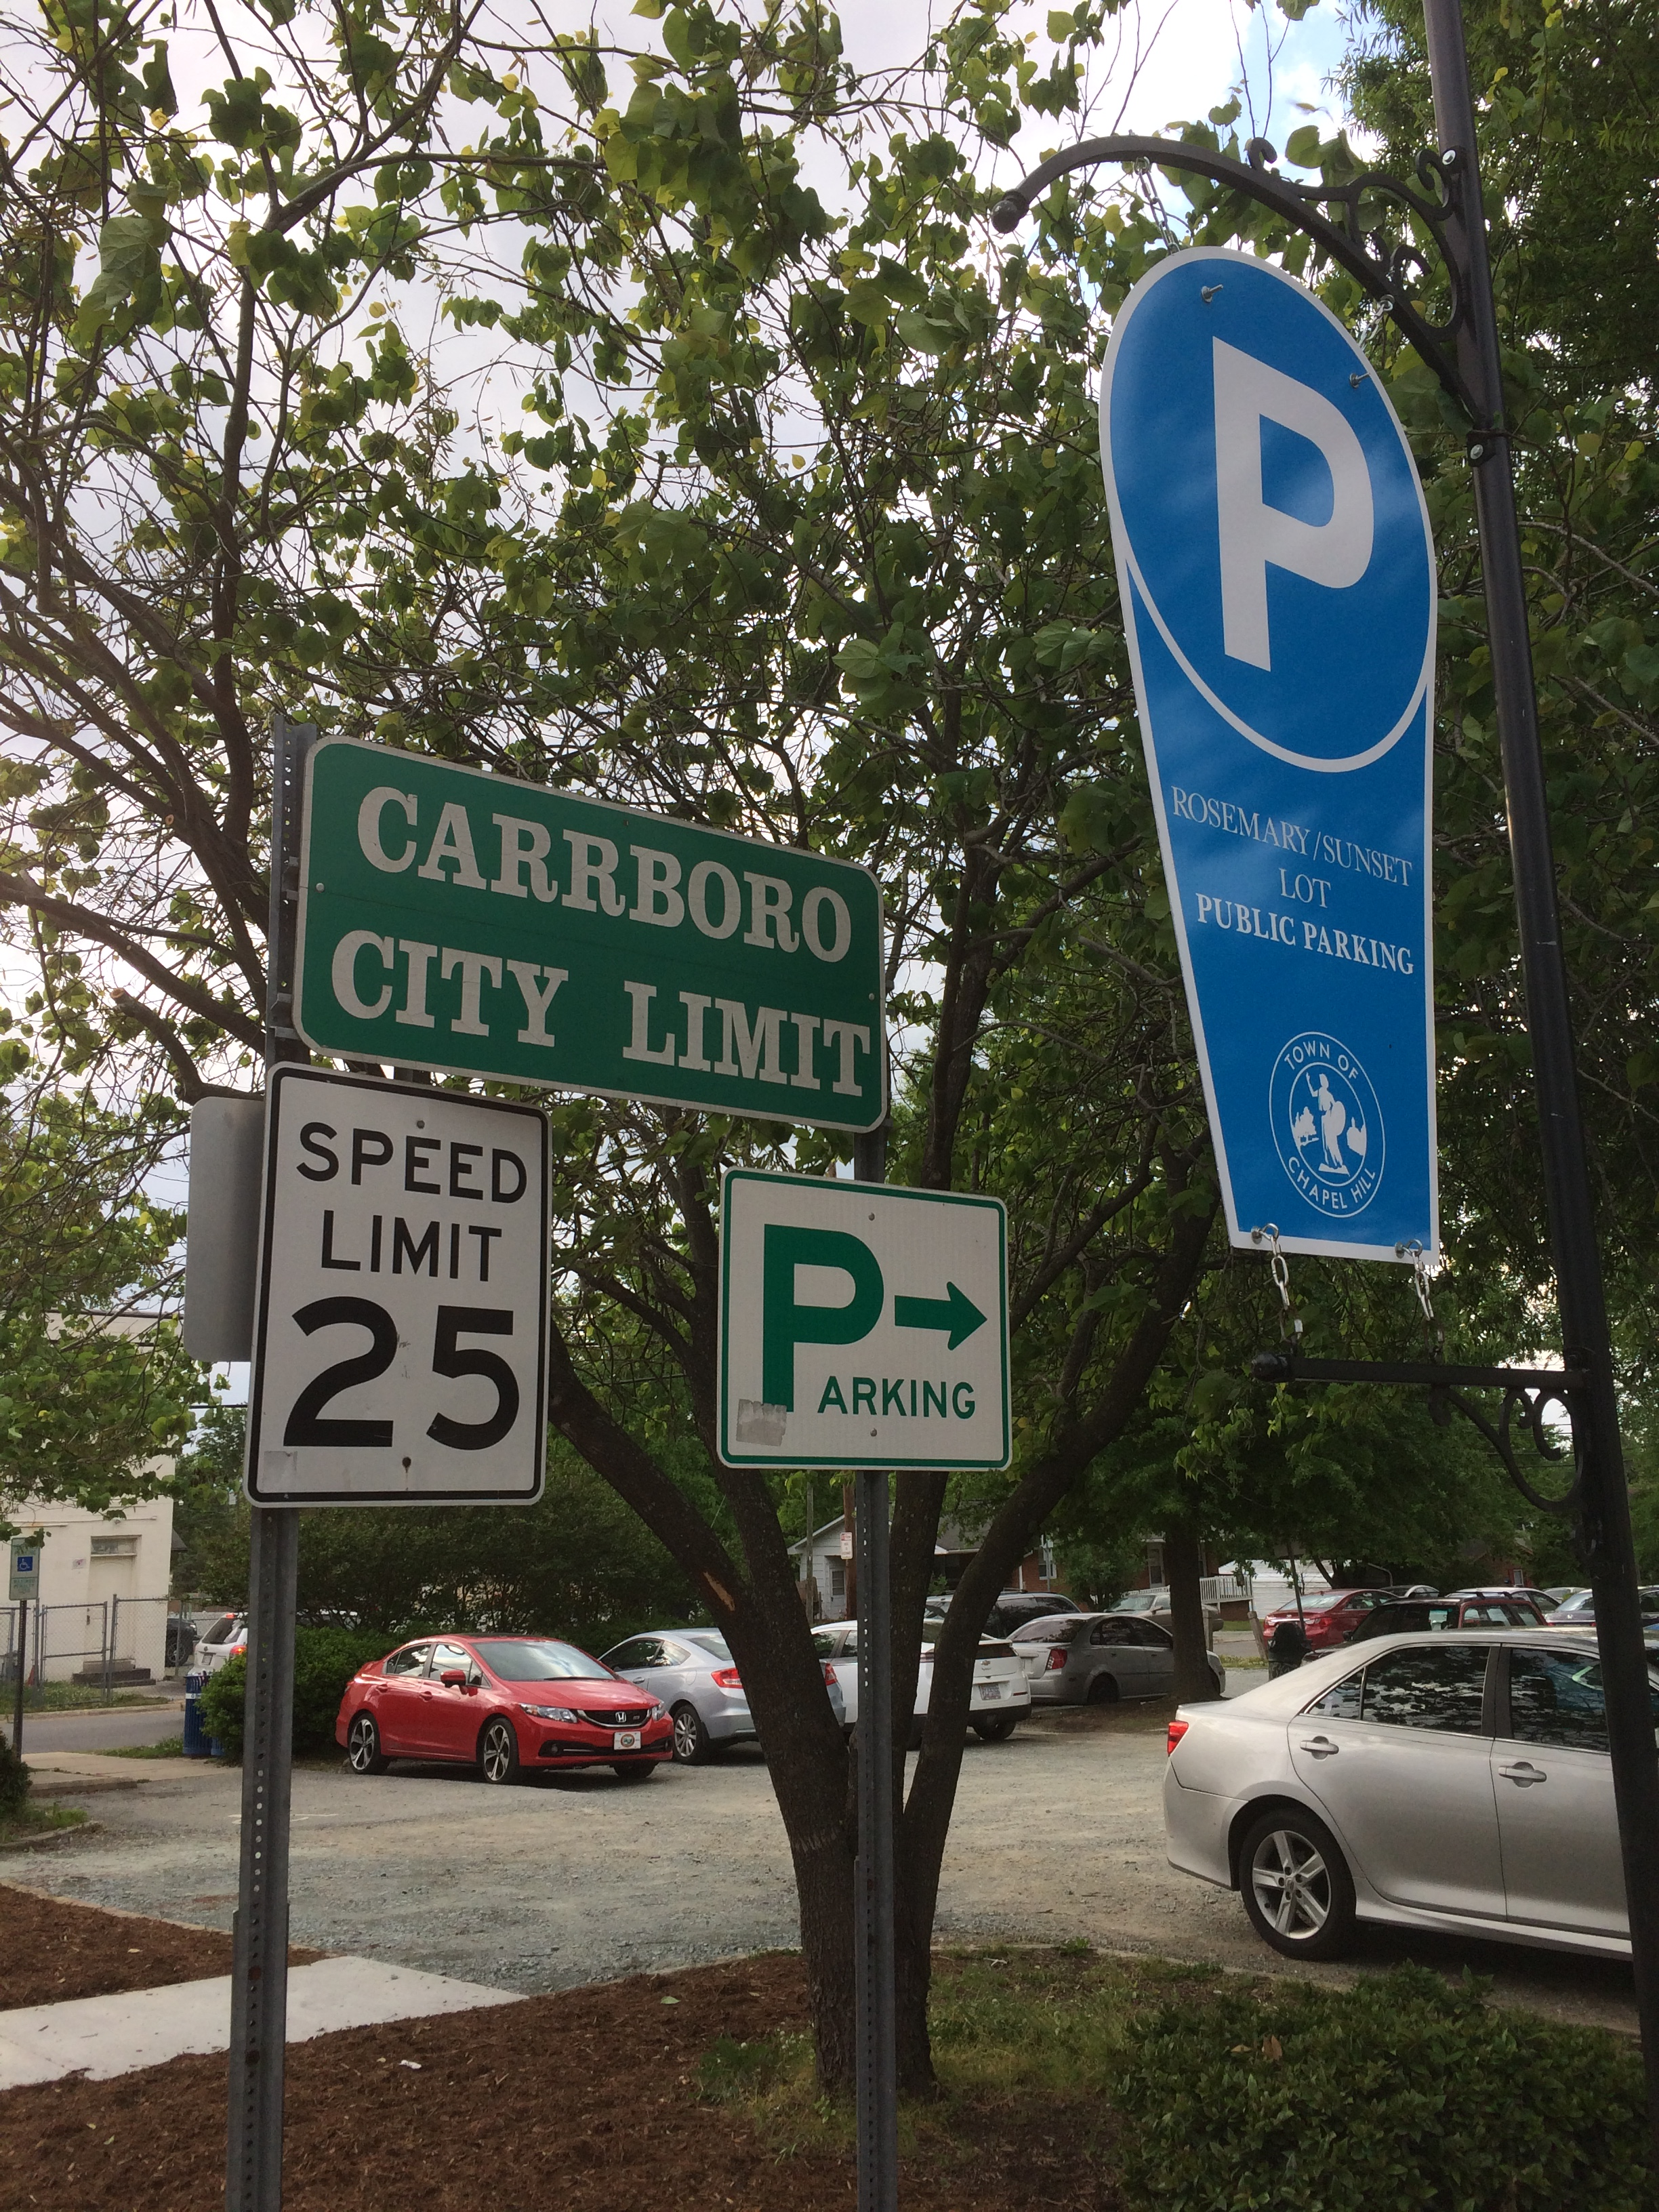 Carrboro Parking Study Gathers Good Data, But We Need to Start Charging for Parking at ONE Lot